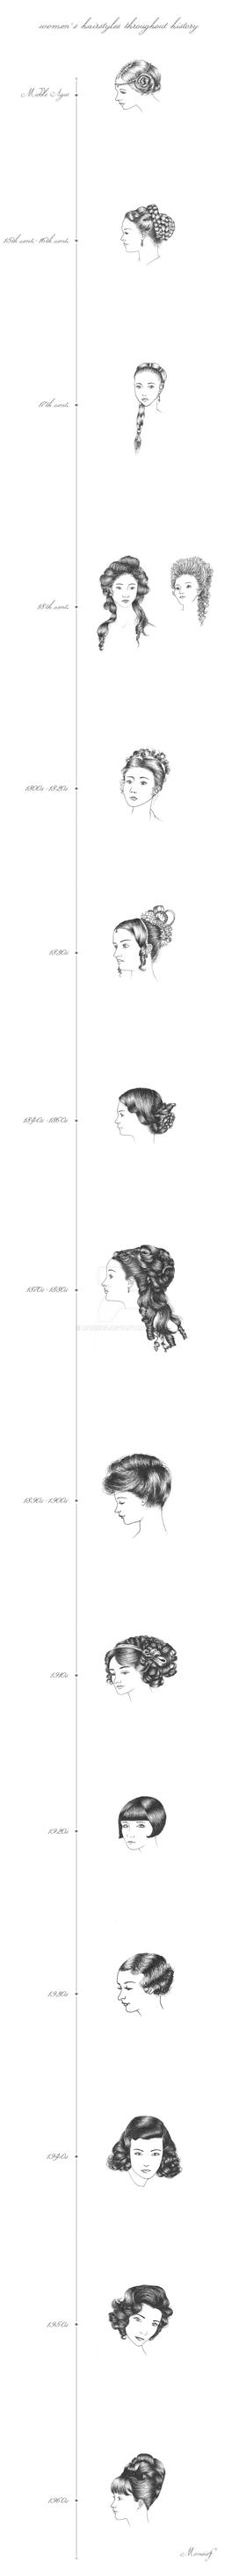 Women's hairstyles throughout history by MonsieF